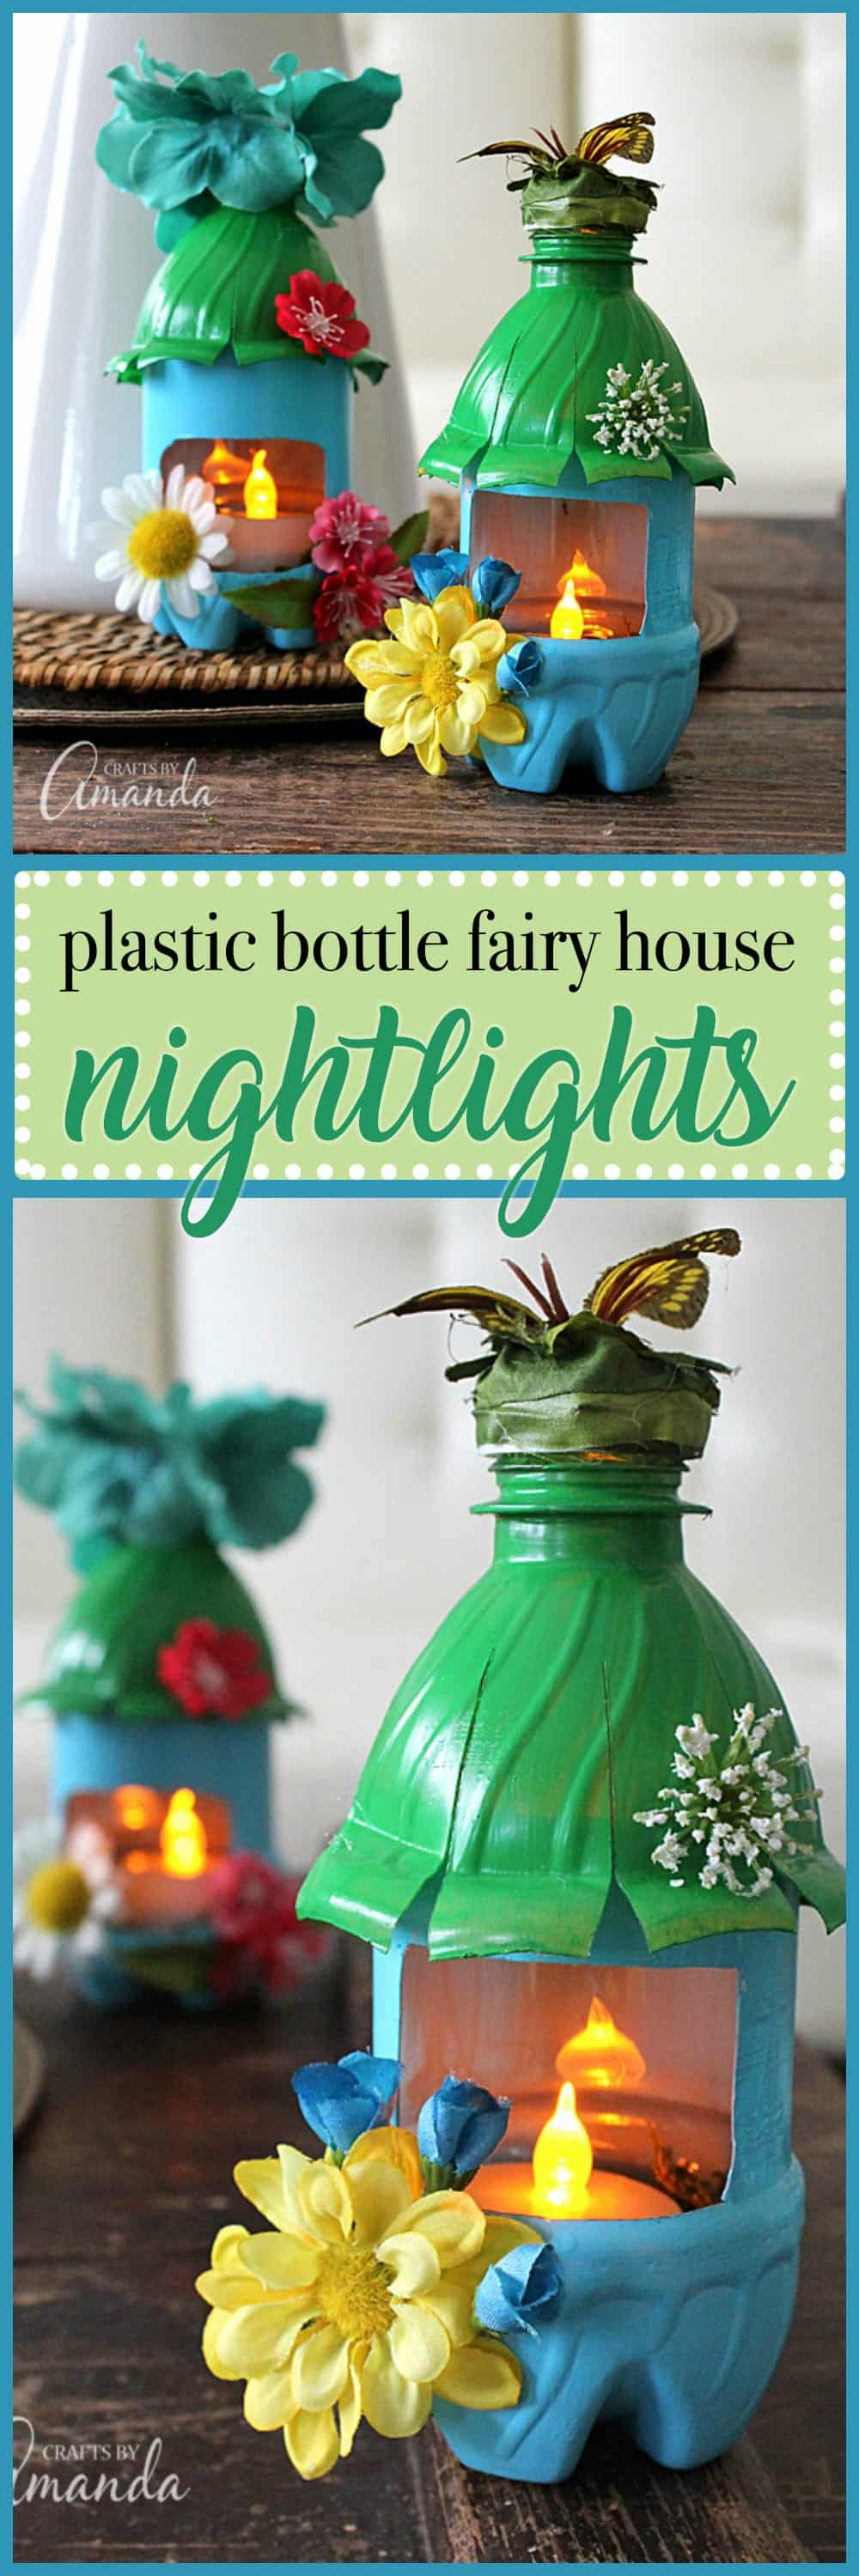 fairy house night lights from plastic bottles recycle craft turn empty plastic water bottles into adorable little fairy house night lights fun for a